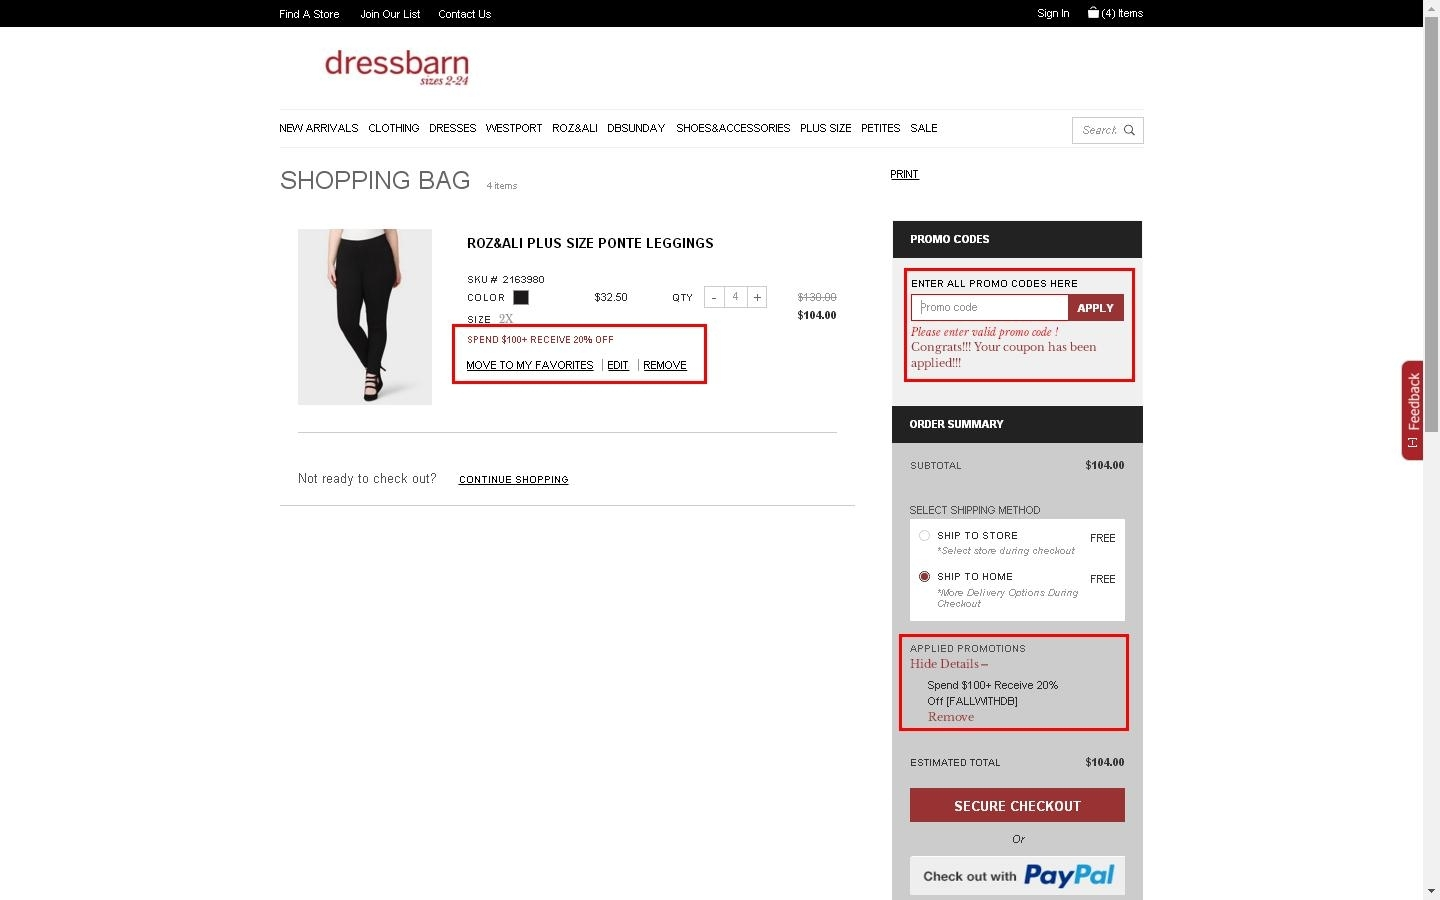 These Dressbarn promo codes have expired but may still work.